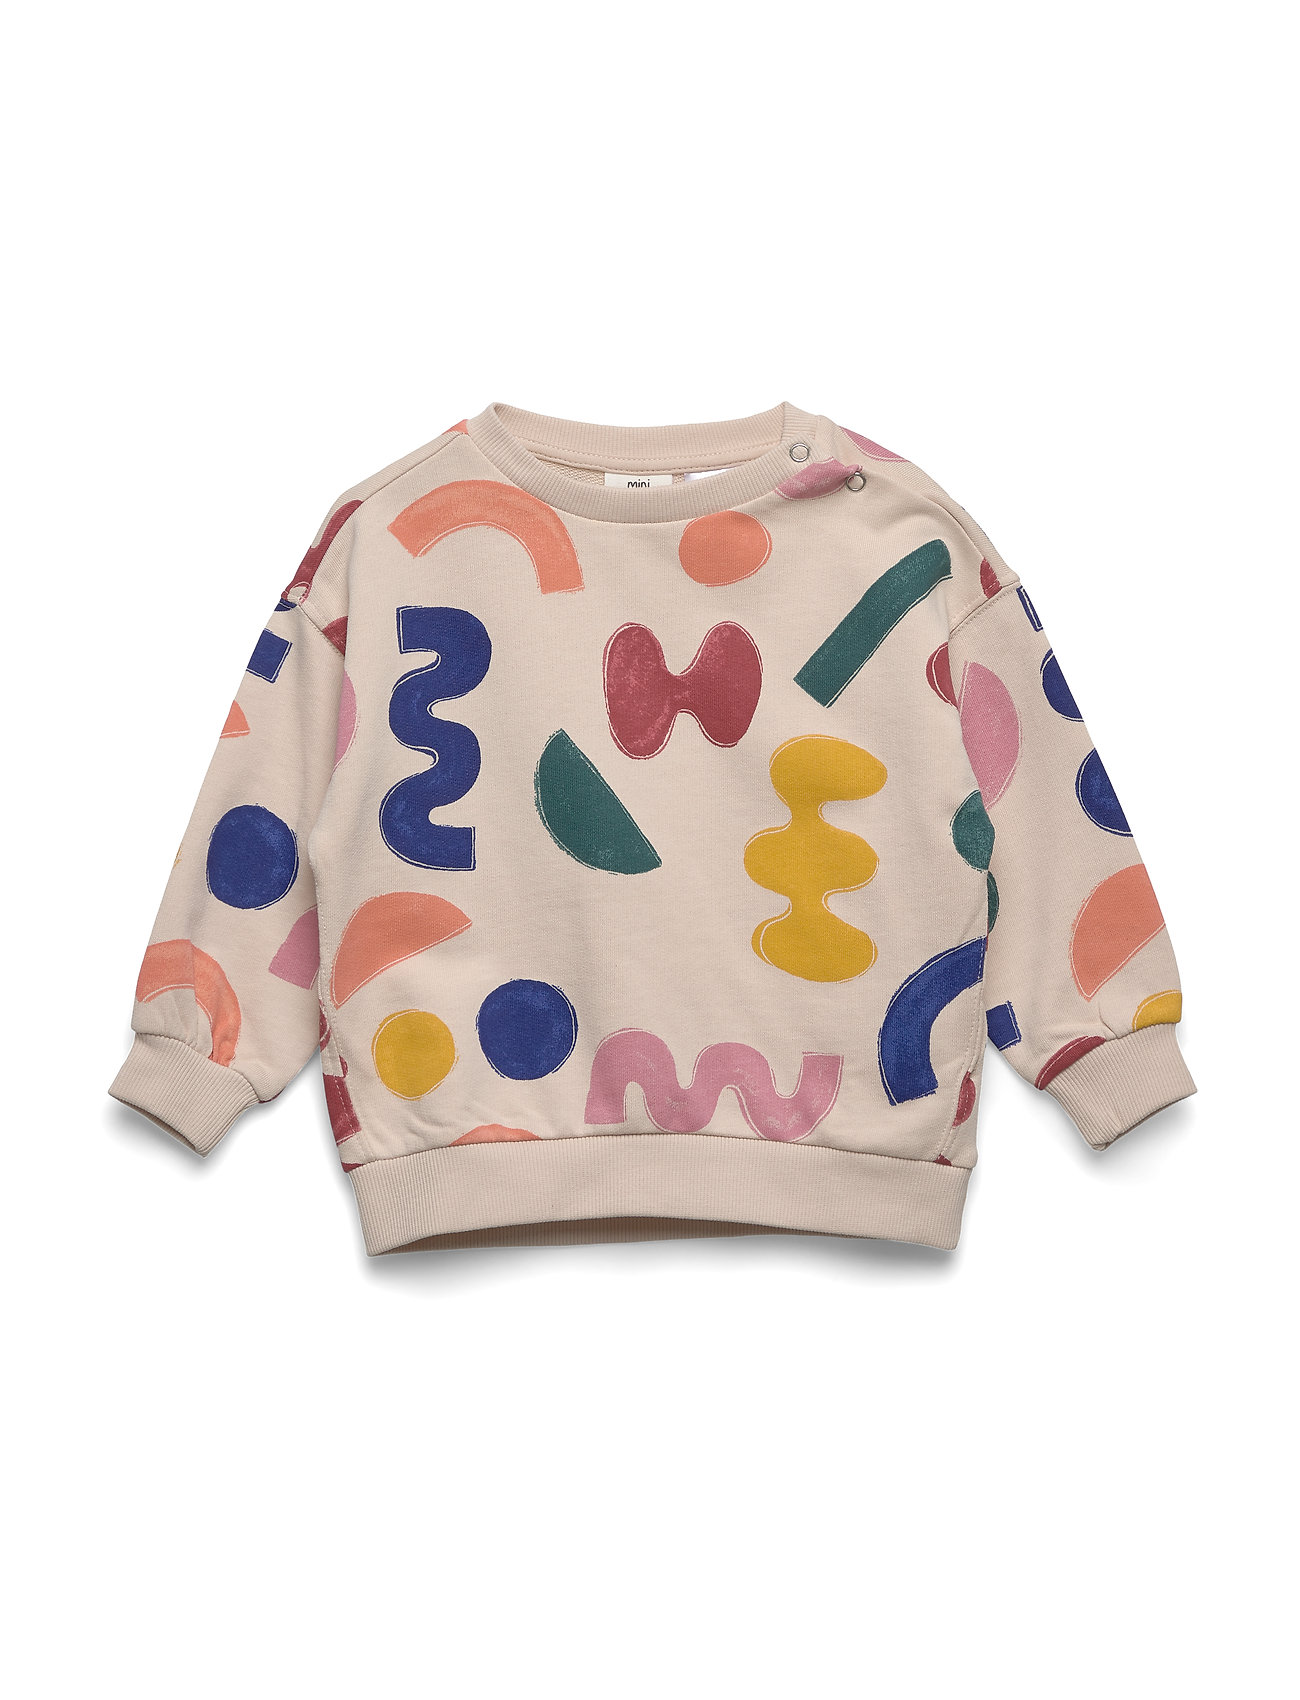 Gina Tricot Mini baby sweater - SHAPES (7152)